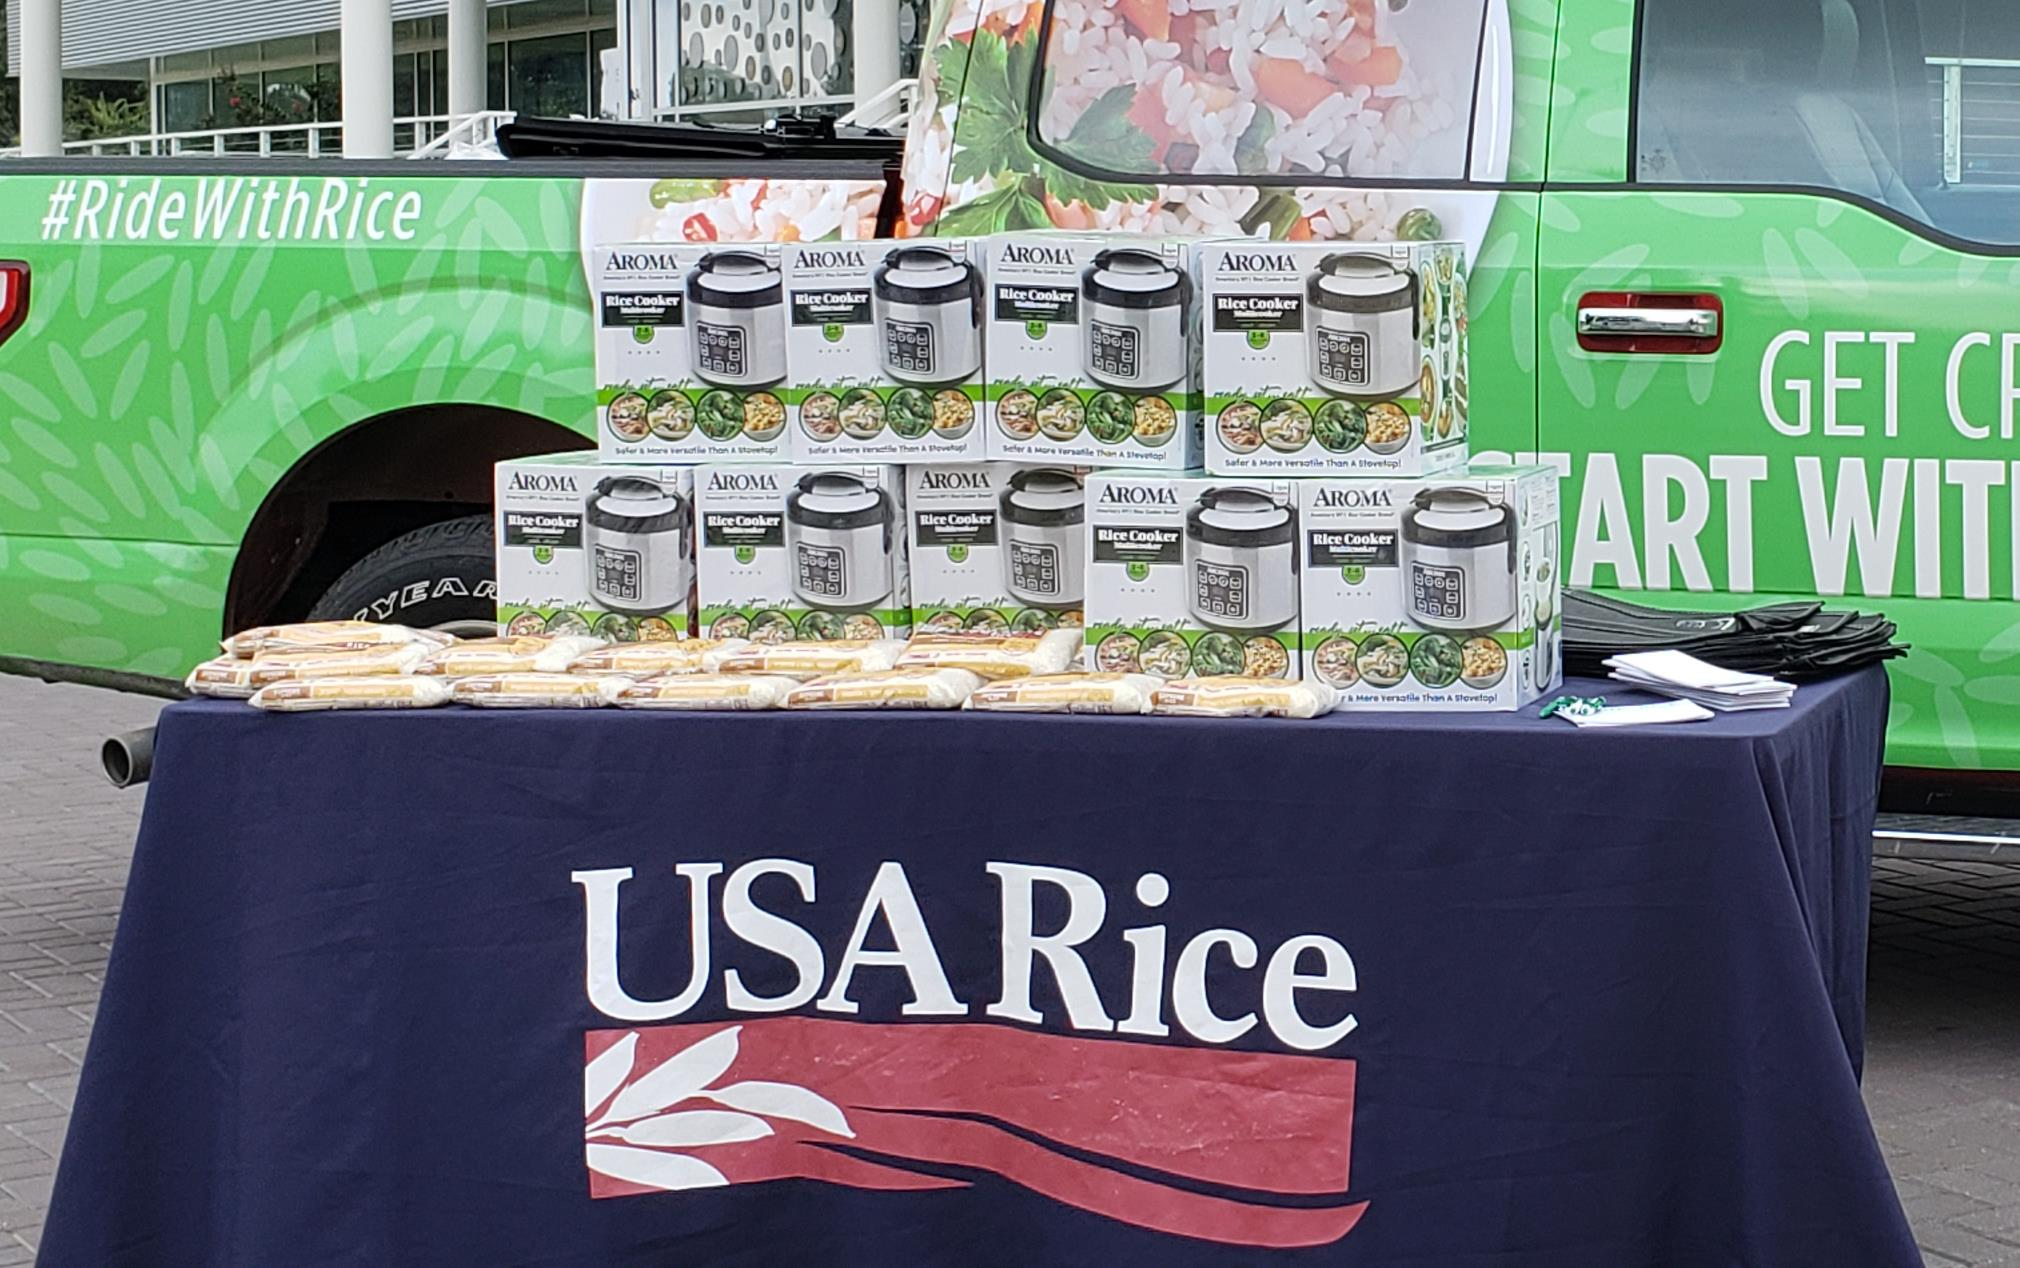 """Green pickup truck with designs & words """"Get Creative, Start With Rice,"""" sits behind table with USA Rice banner and stacks of boxes on top"""